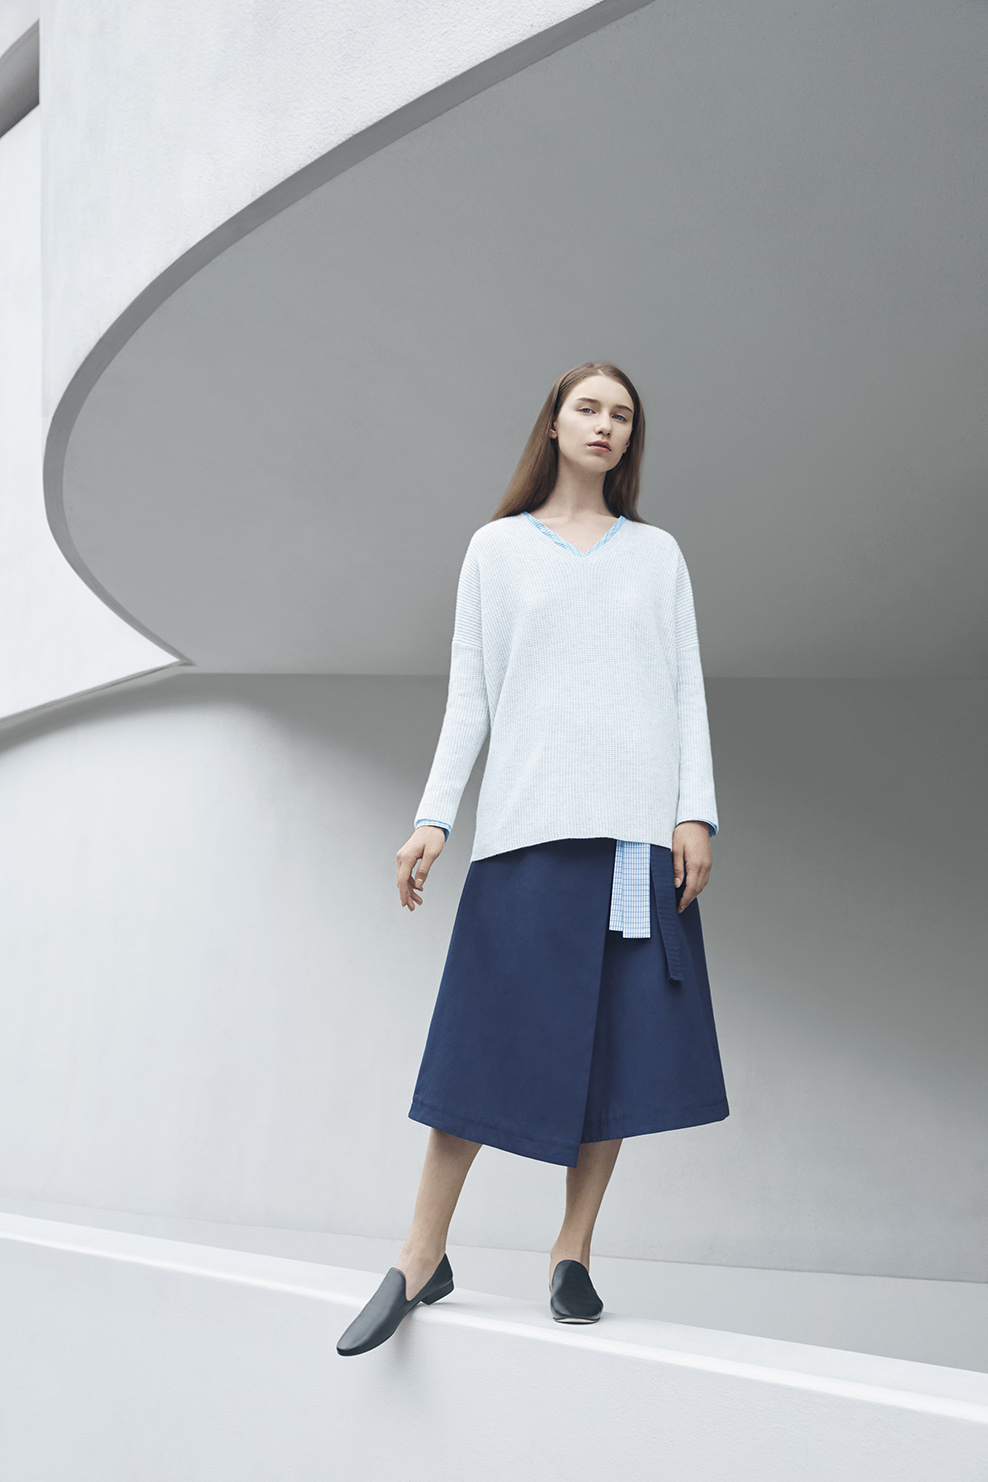 cos-agnes-martin-guggenheim-fw2016-lookbook-mens-womens-8